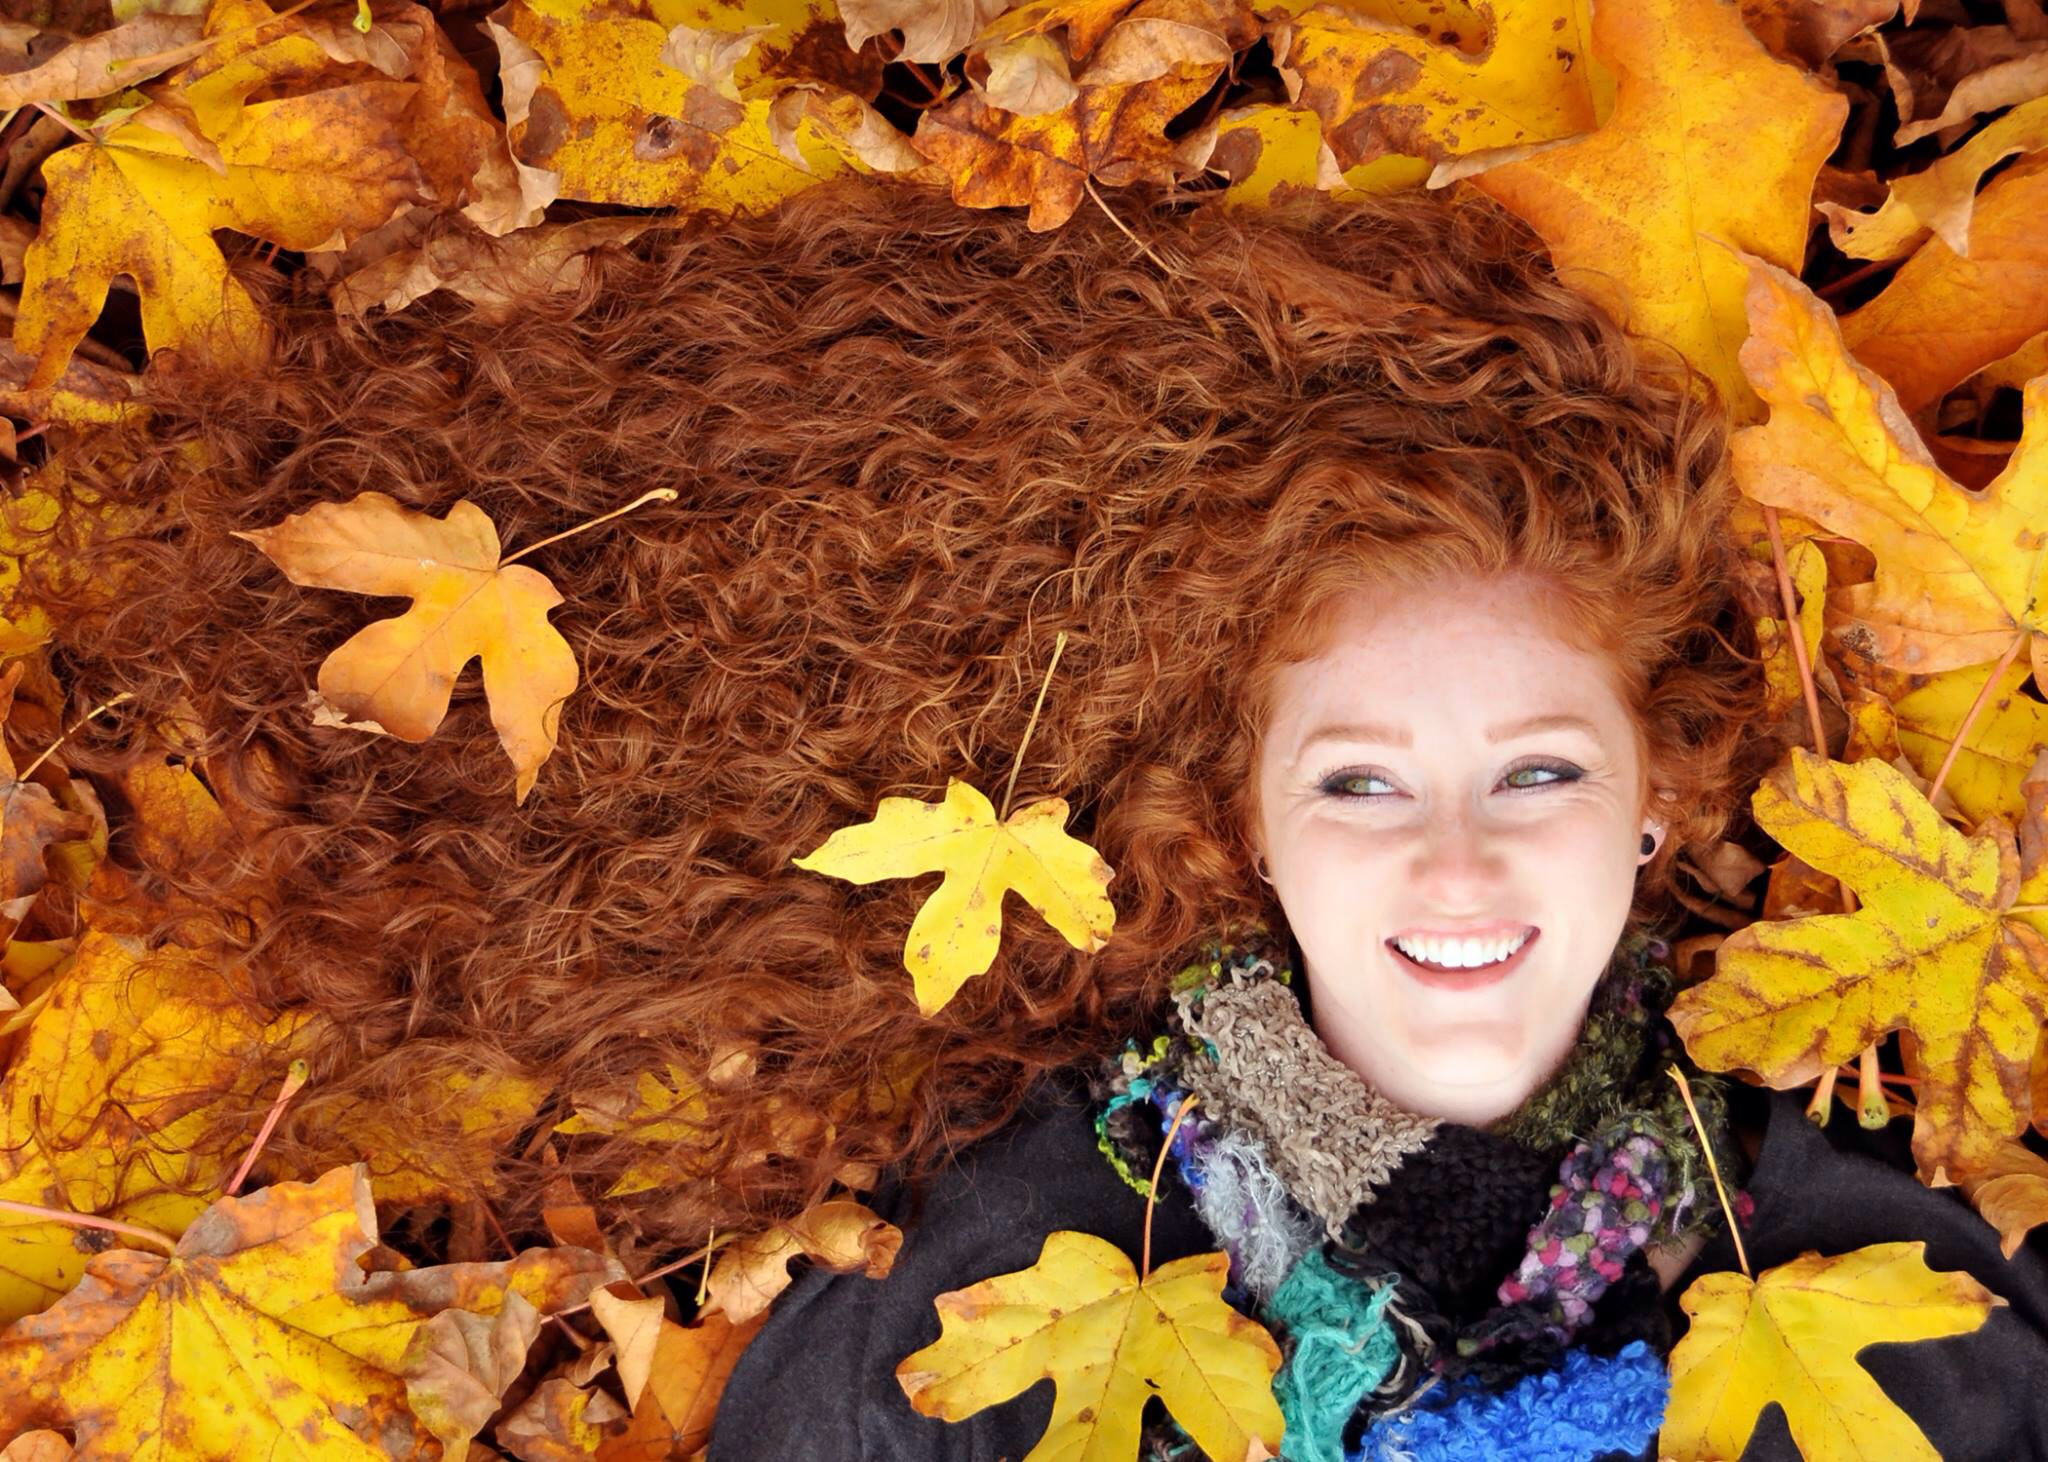 Red Head in Autumn Leaves